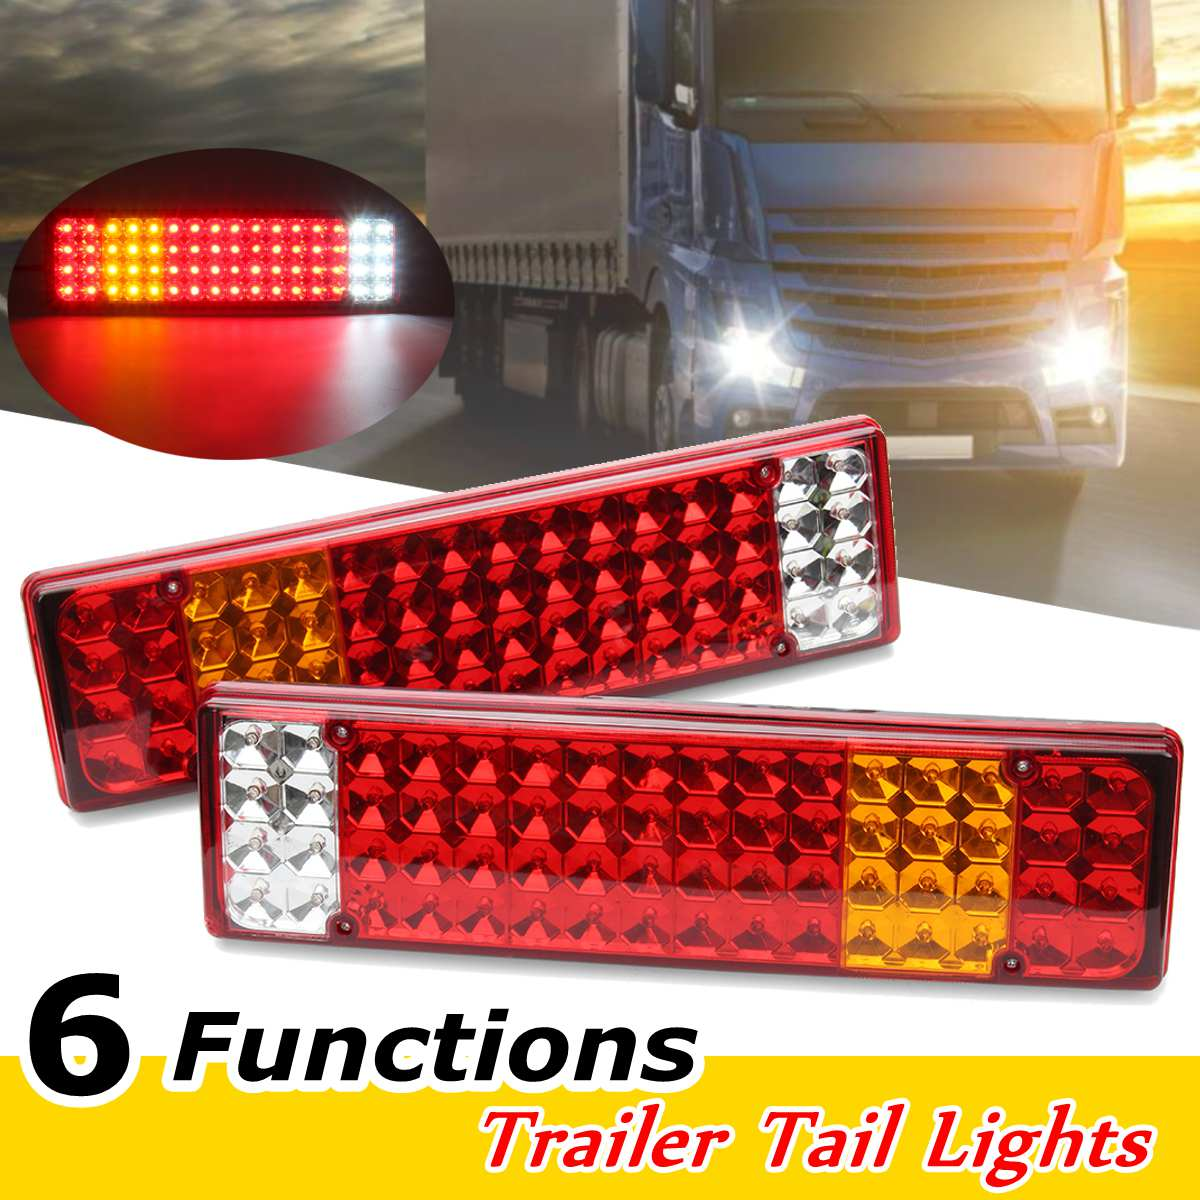 2pcs LED Rear Tail Lights Lamps 6 Functions For Scania -Mercedes Man Daf Ranault -Volvo Iveco 24V iveco eurostar том 2 устройство каталог деталей 5 902682 26 6